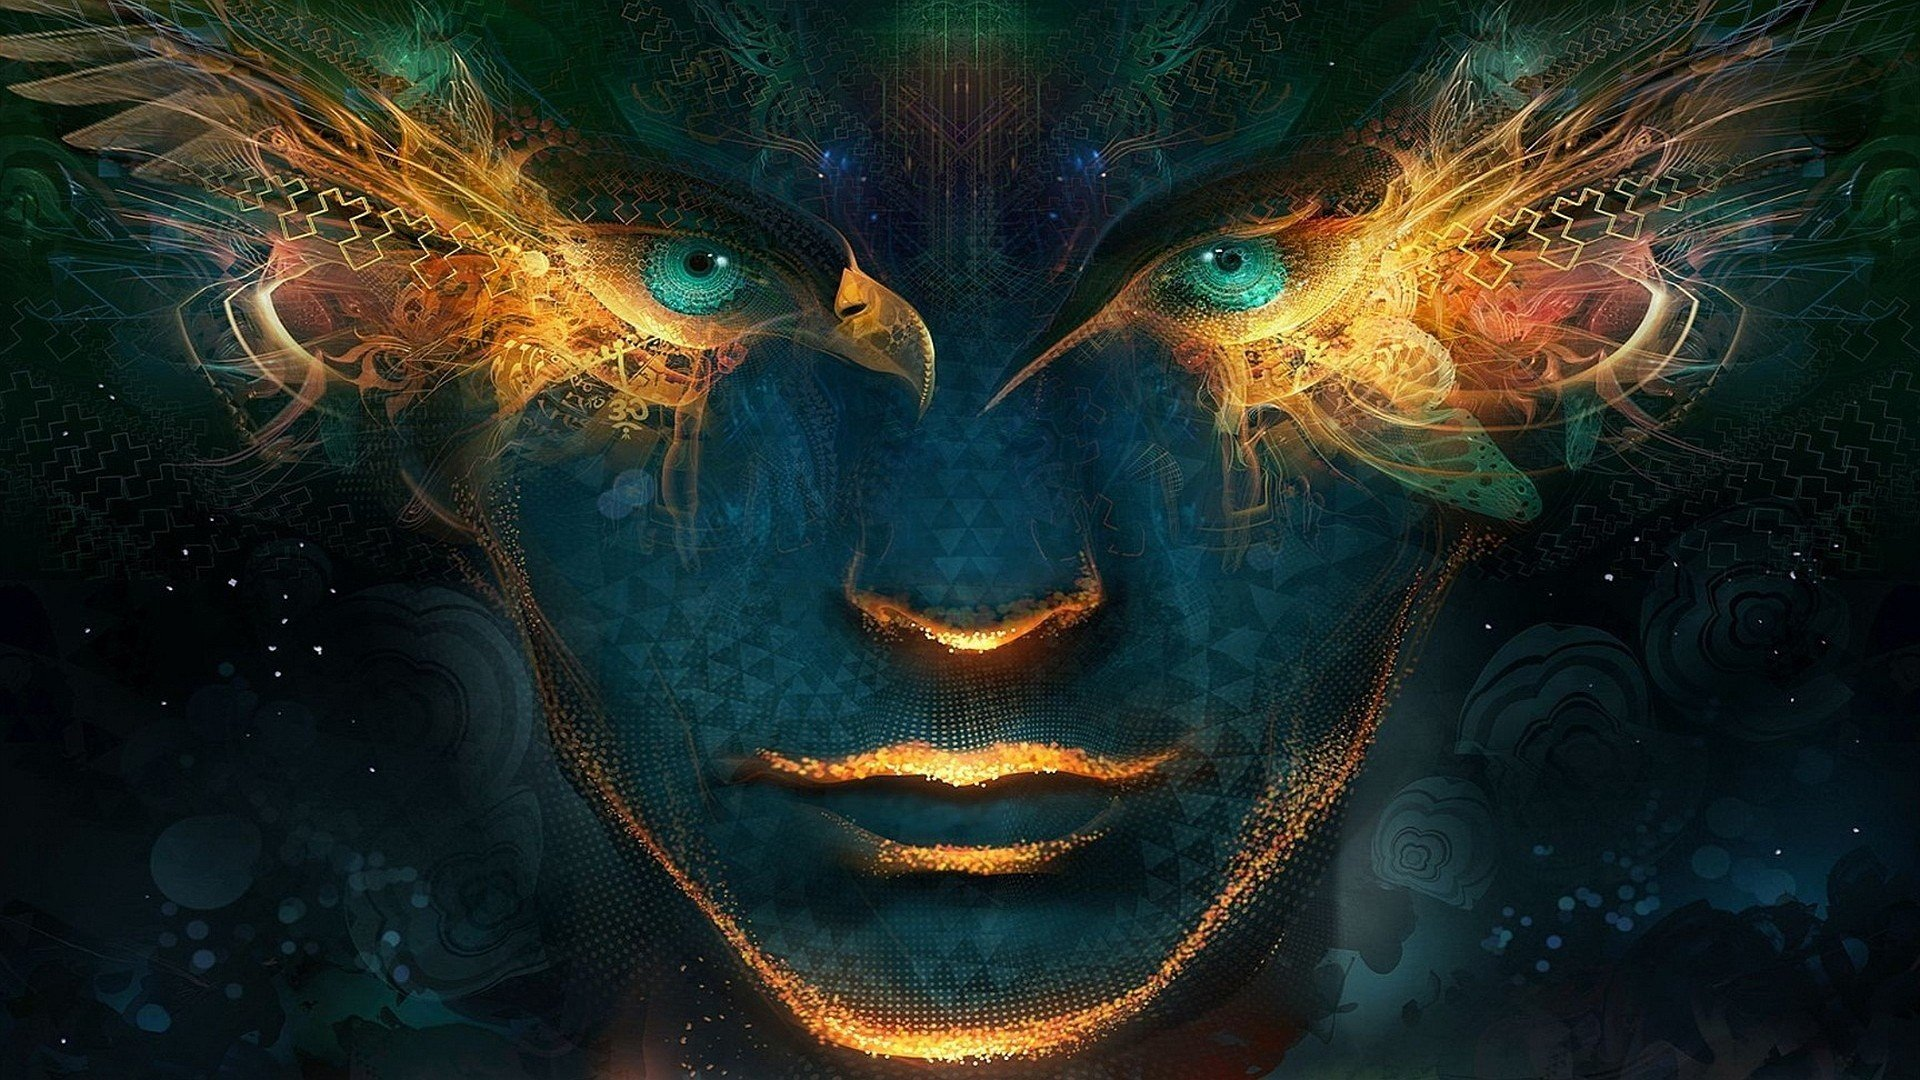 face green eyes digital art artwork abstract geometry wings glowing android jones hd wallpapers desktop and mobile images photos